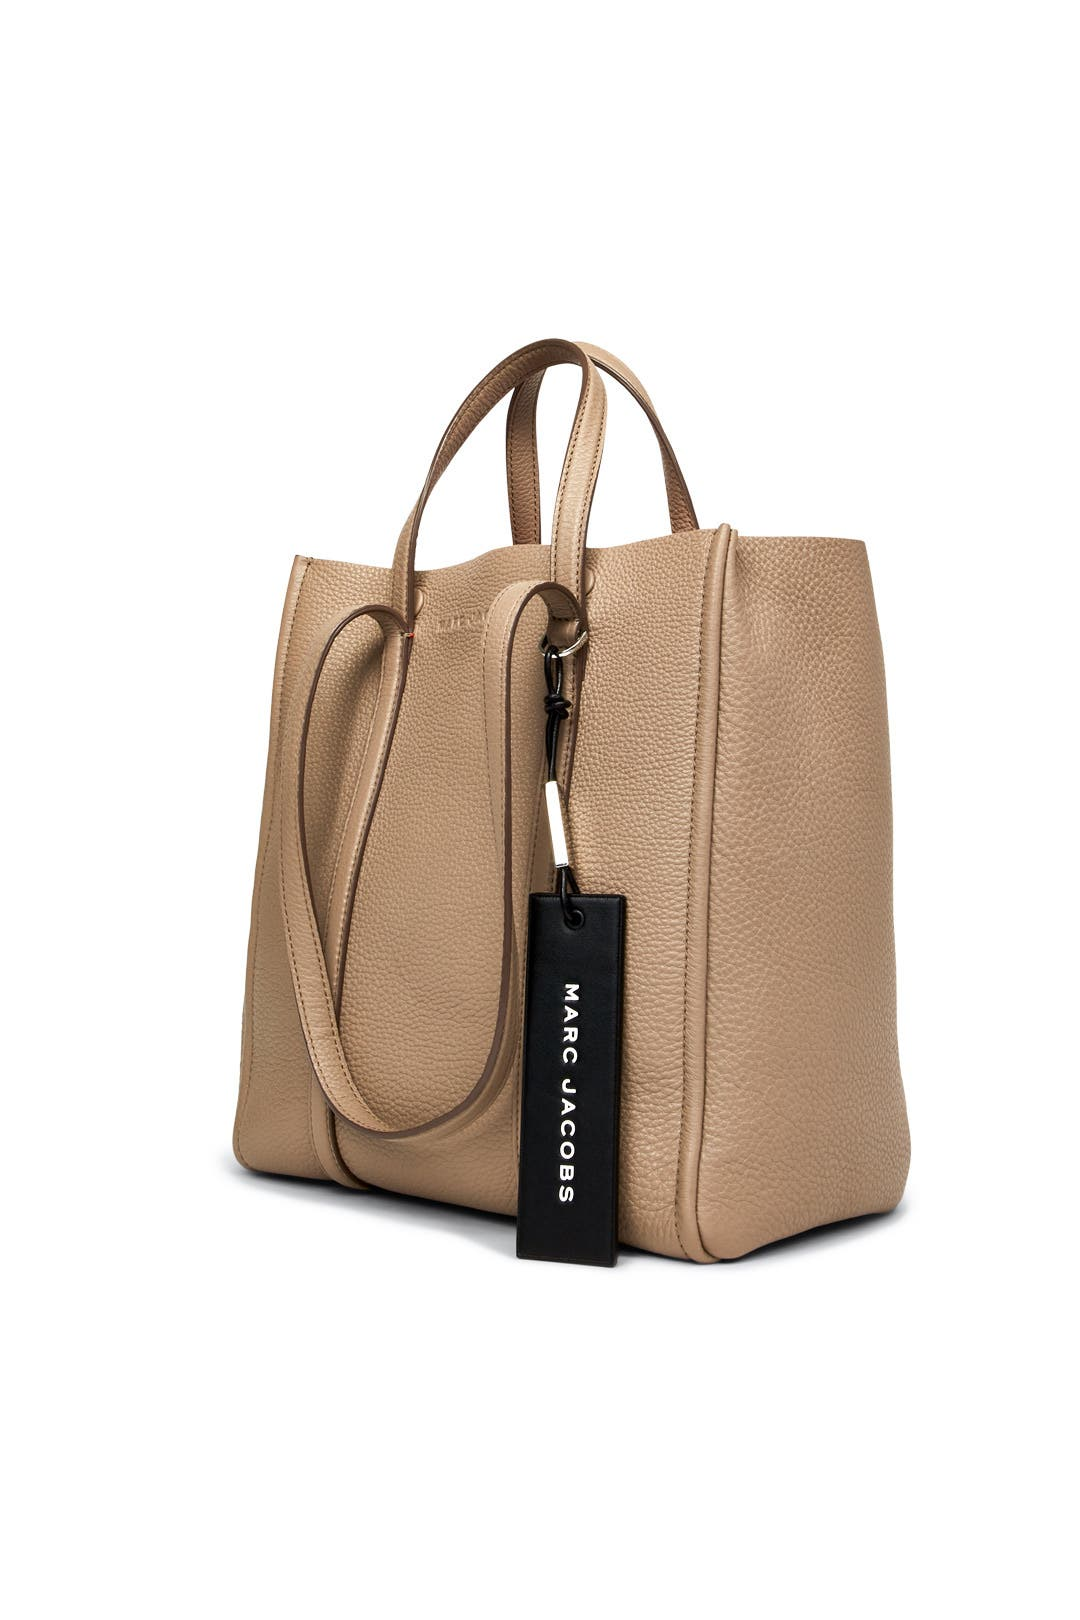 52560054fa02 Cement Tag Tote by Marc Jacobs Handbags for  60